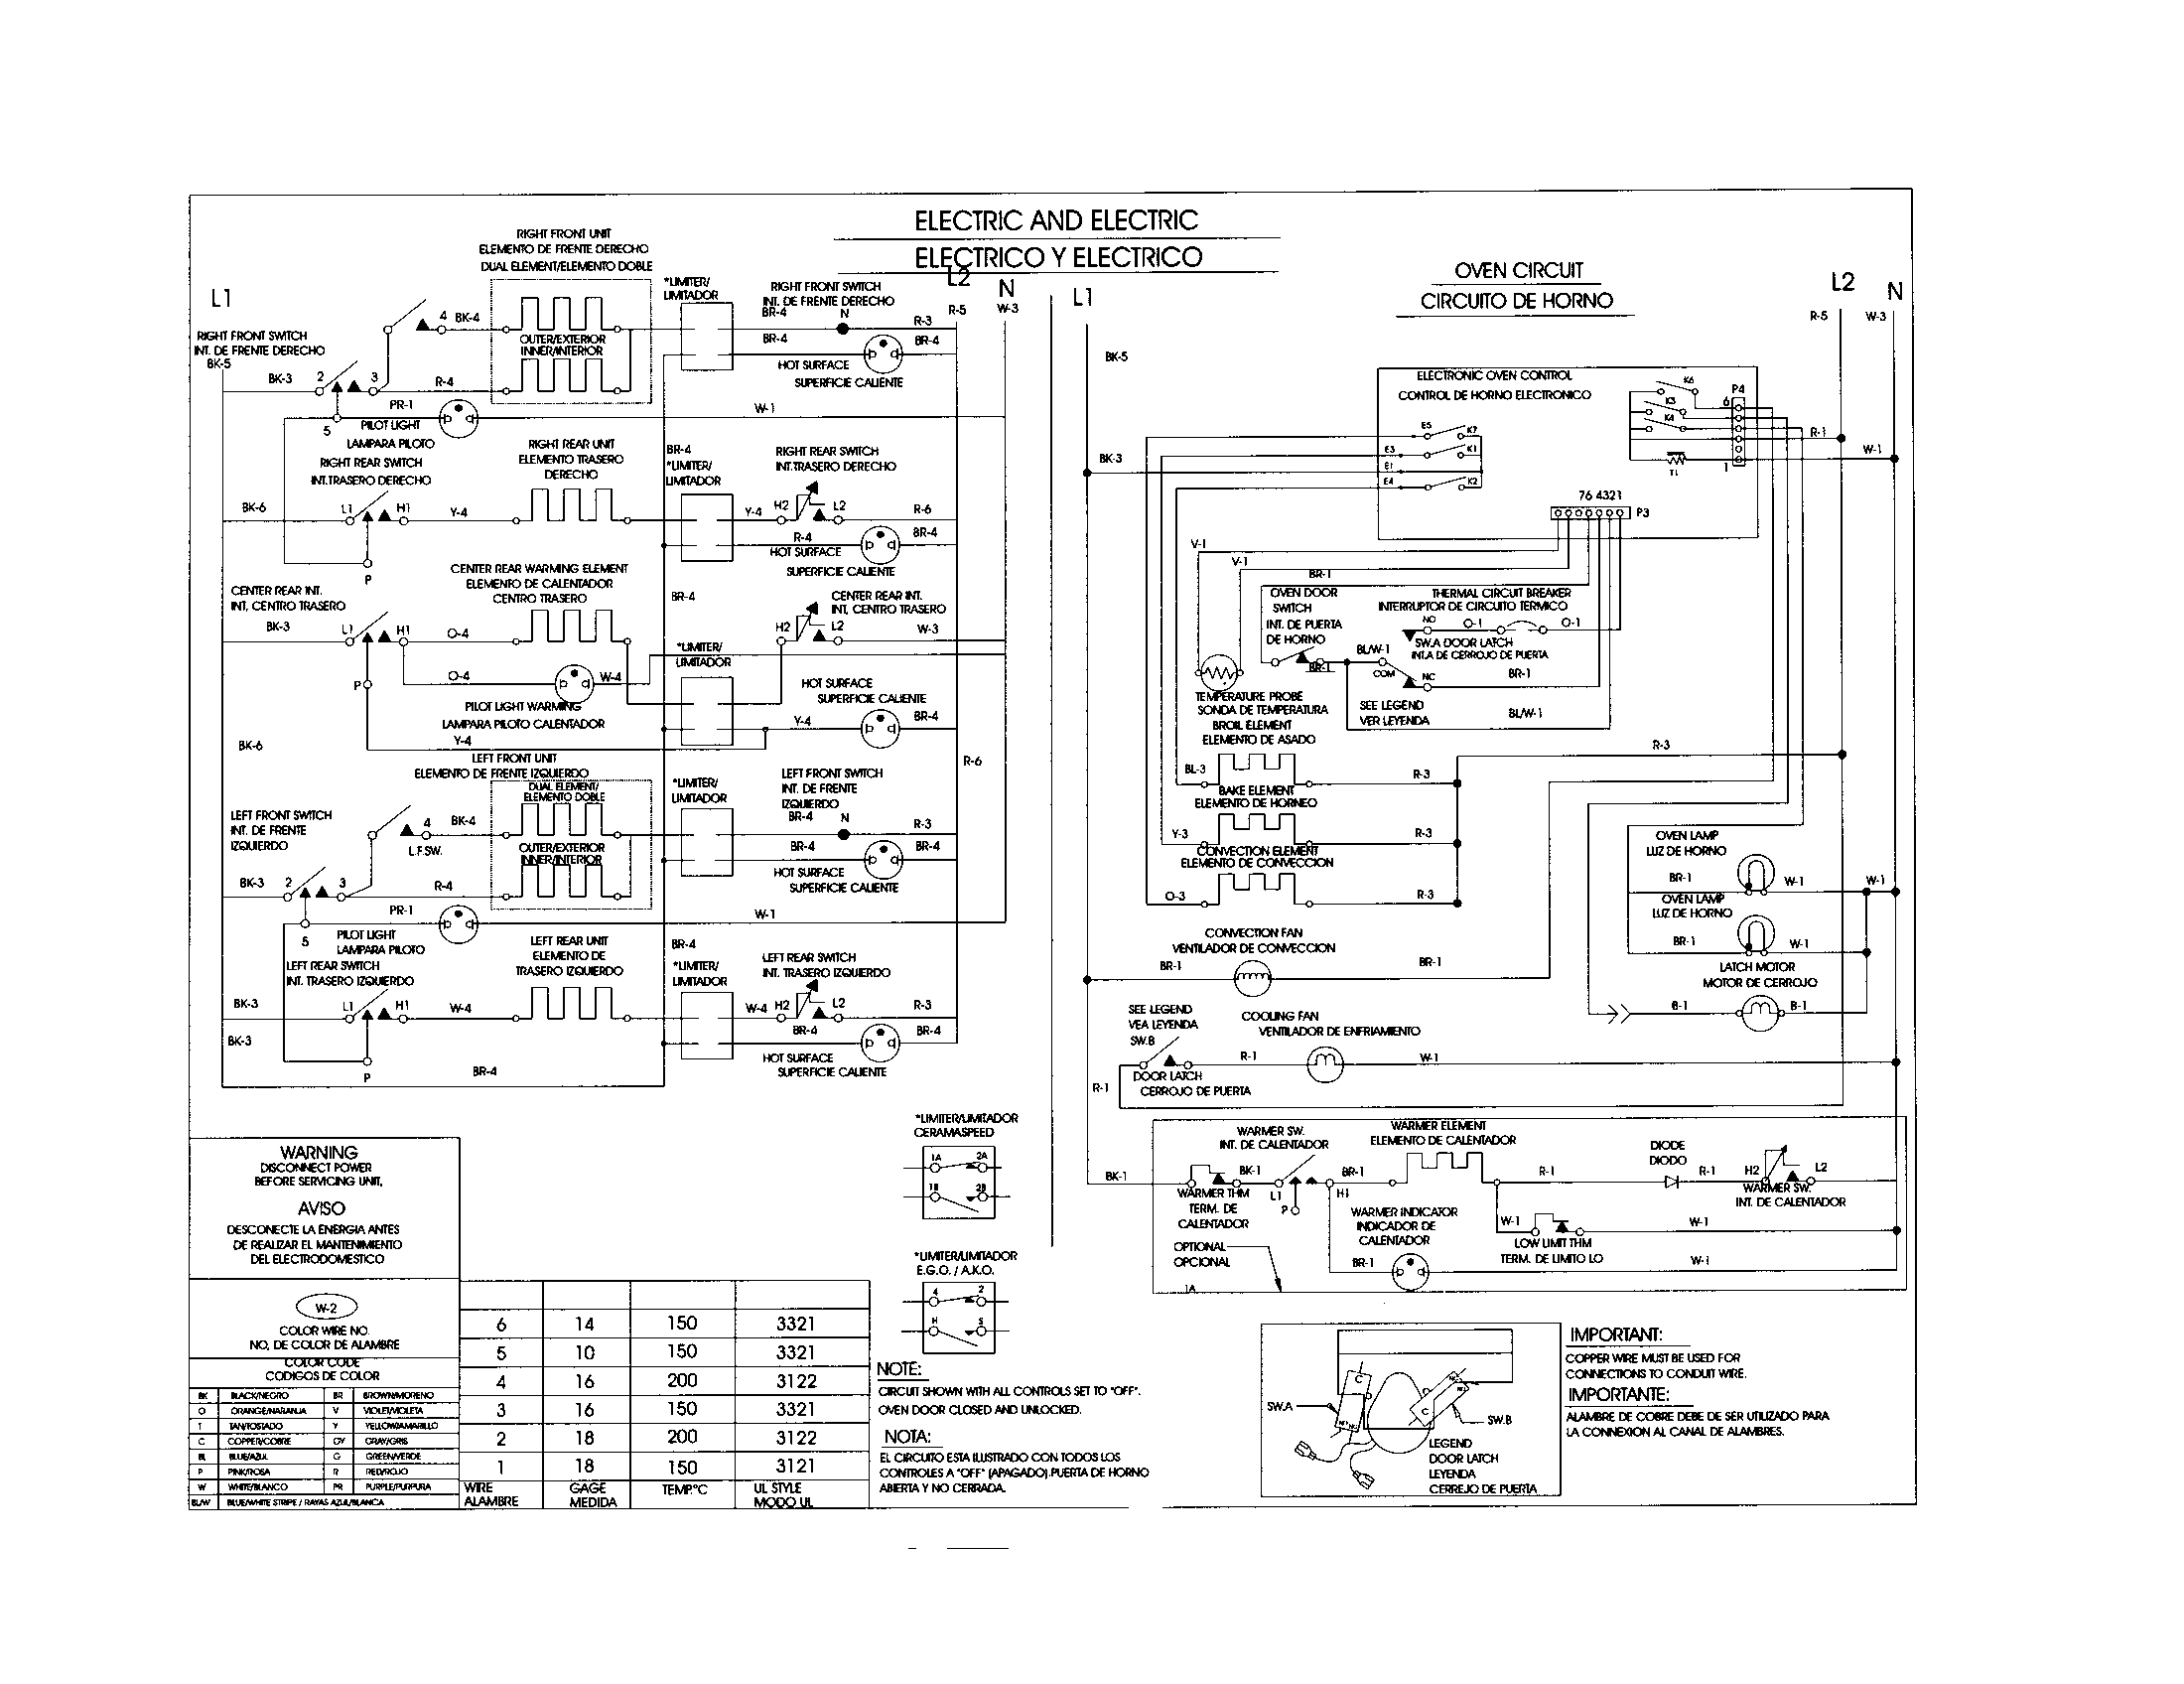 kenmore dishwasher wiring diagram to wiring diagram parts with regard to kenmore elite dishwasher 665 parts diagram kenmore dishwasher wiring diagram kenmore wiring diagrams collection hobart am 14 wiring diagram at mifinder.co